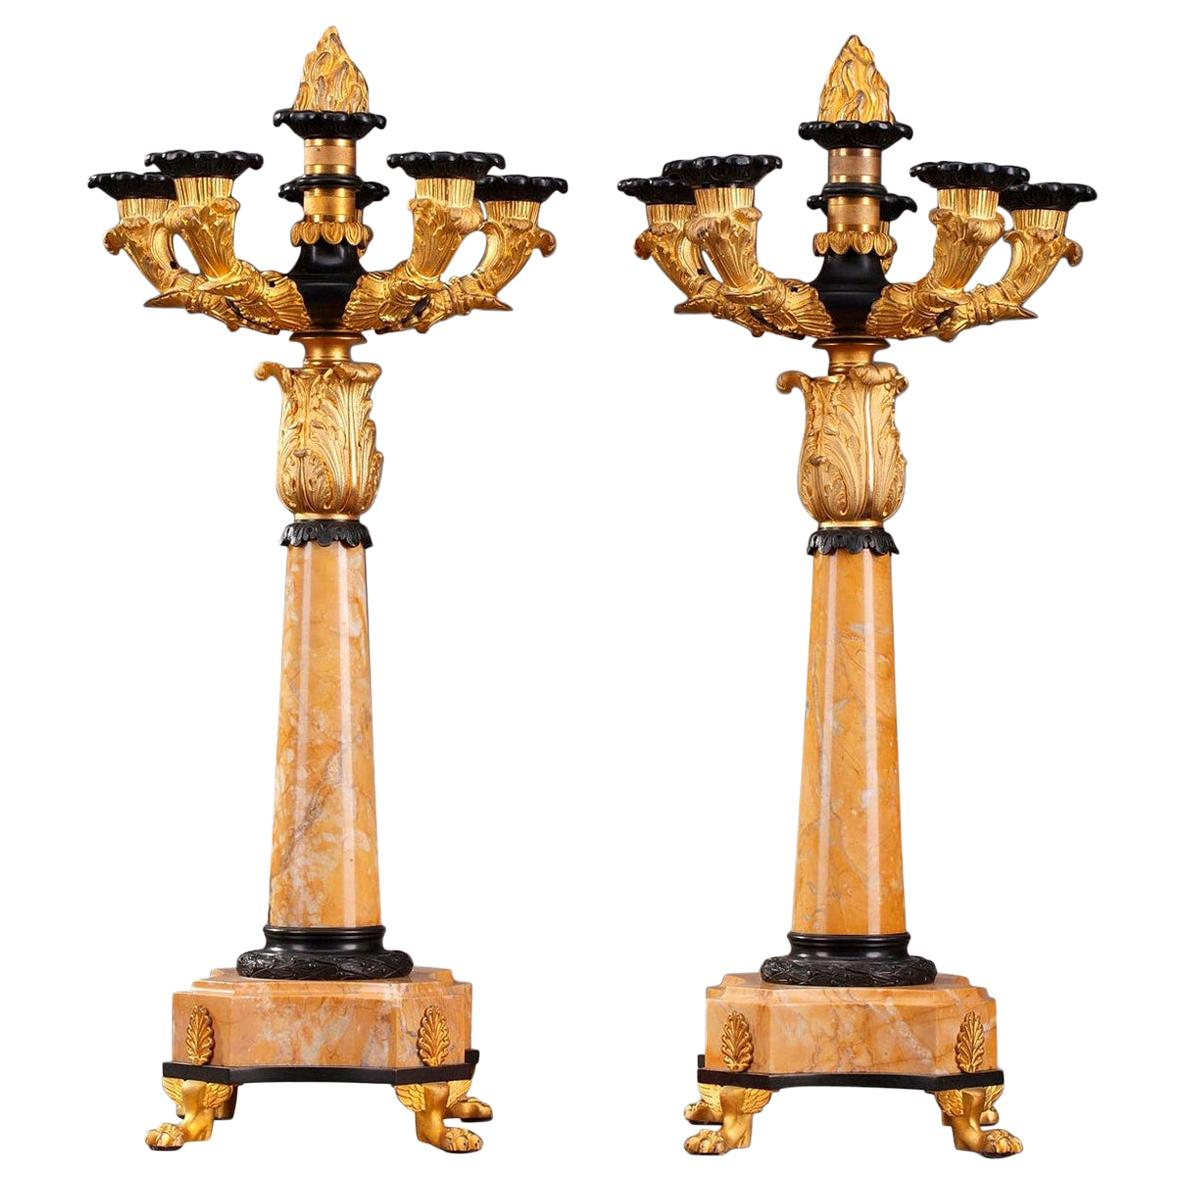 19th Century Louis-Philippe Bronze and Sienna Marble Candelabras